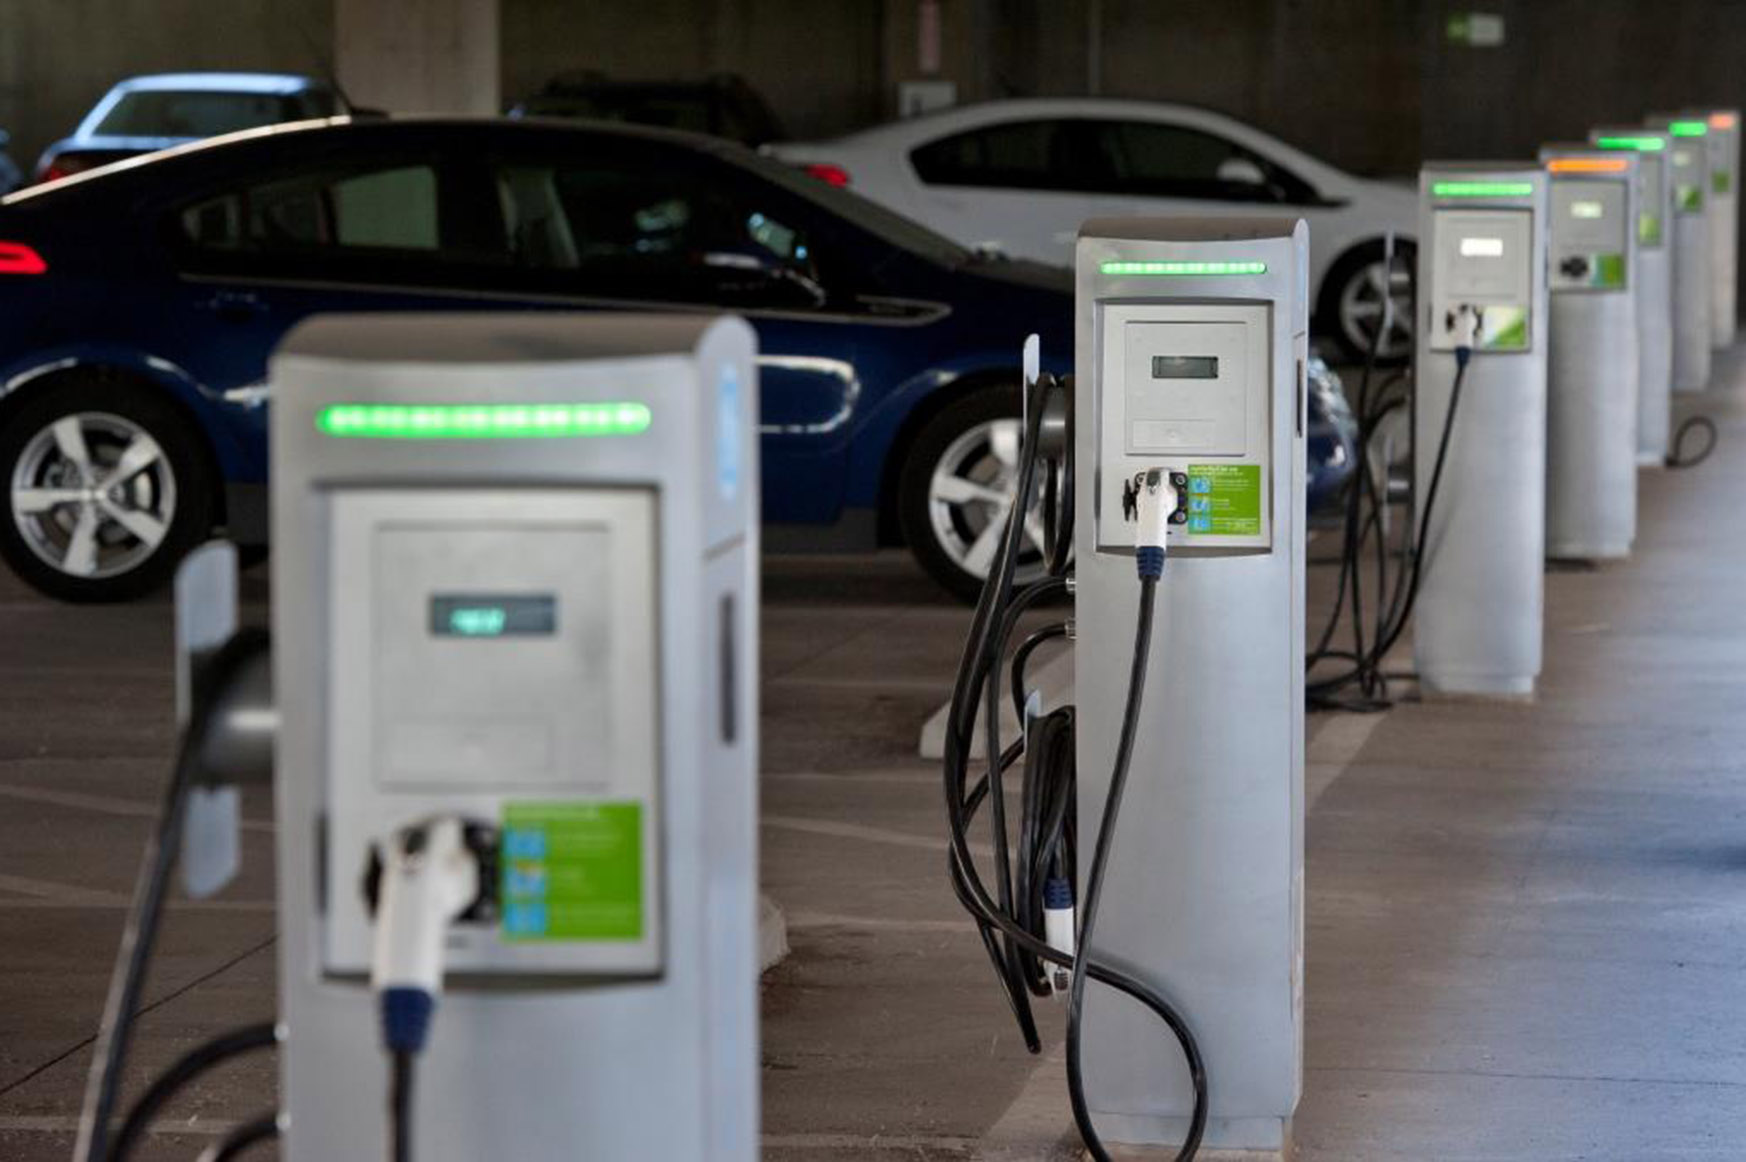 Photo of electric vehicle charging stations in parking garage.